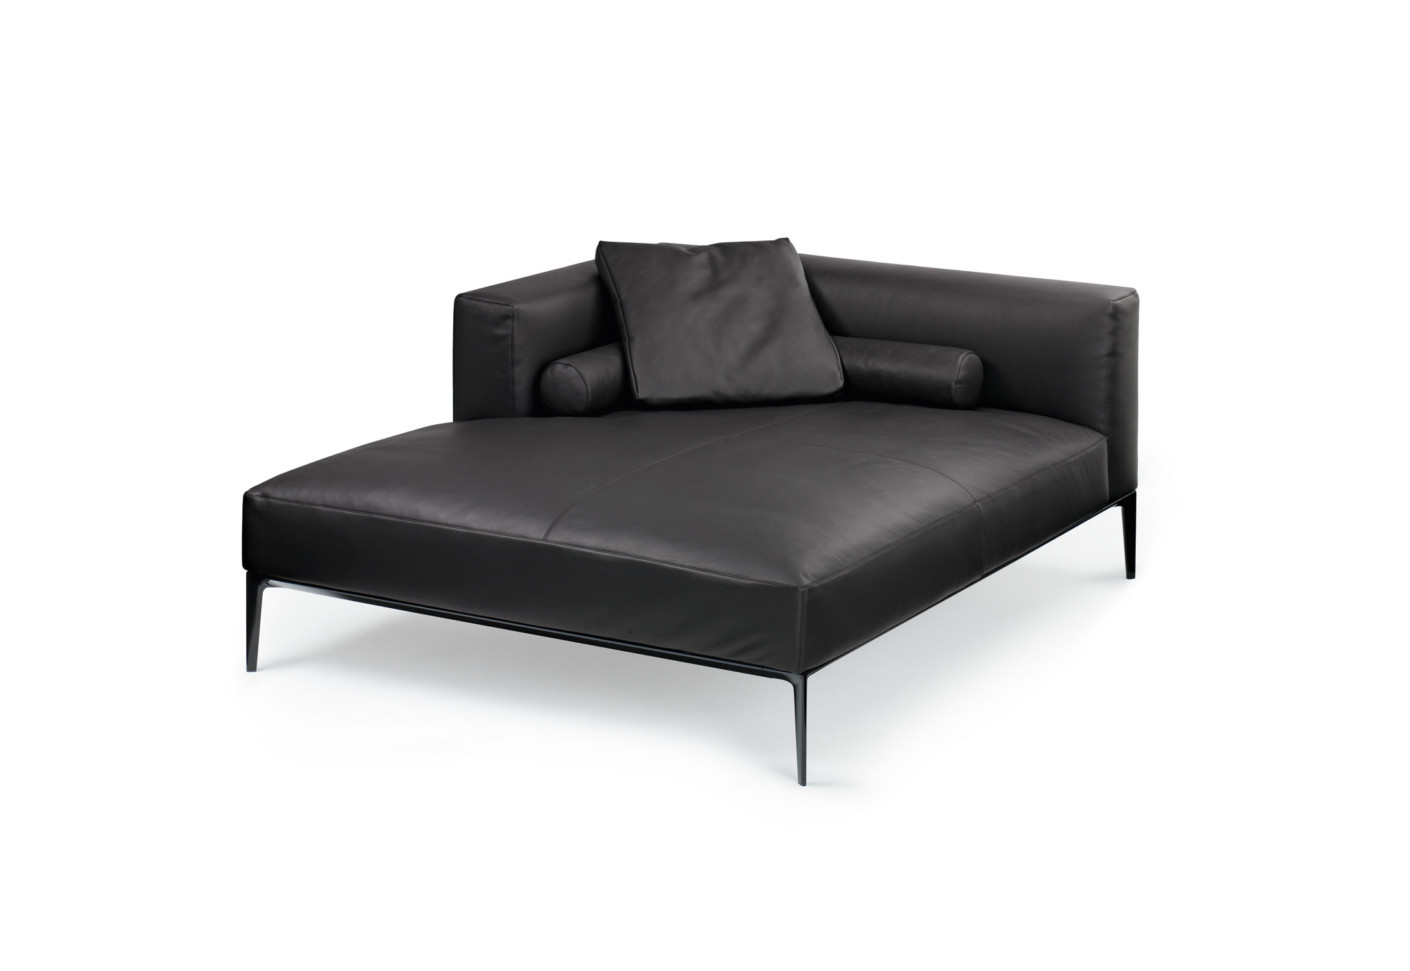 jaan living chaiselongues by walter knoll stylepark. Black Bedroom Furniture Sets. Home Design Ideas